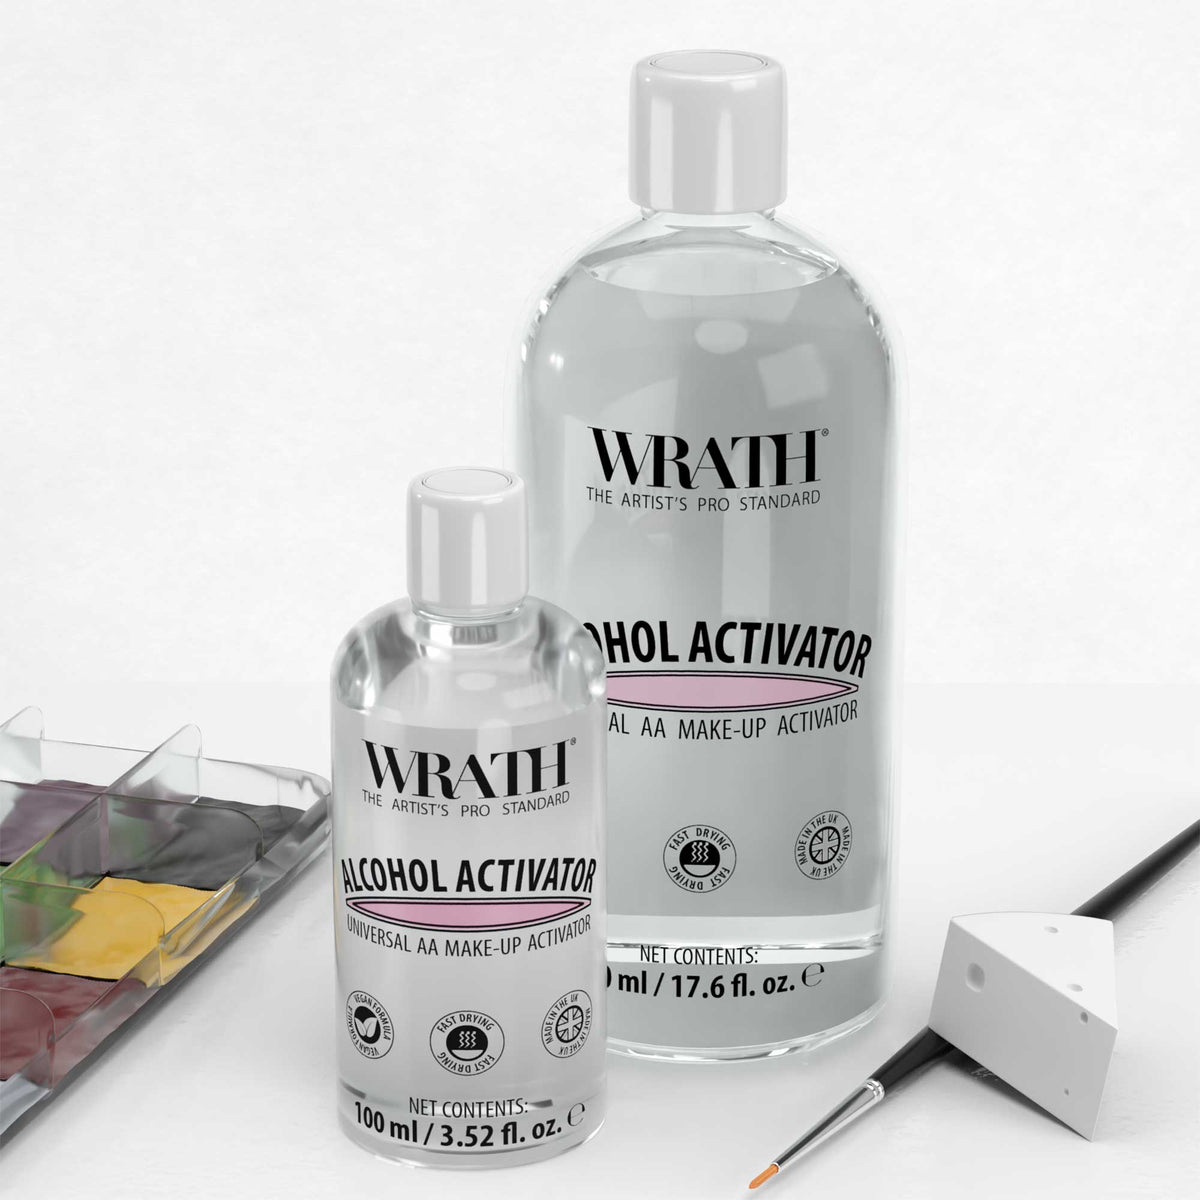 WRATH Alcohol Make-up Activator